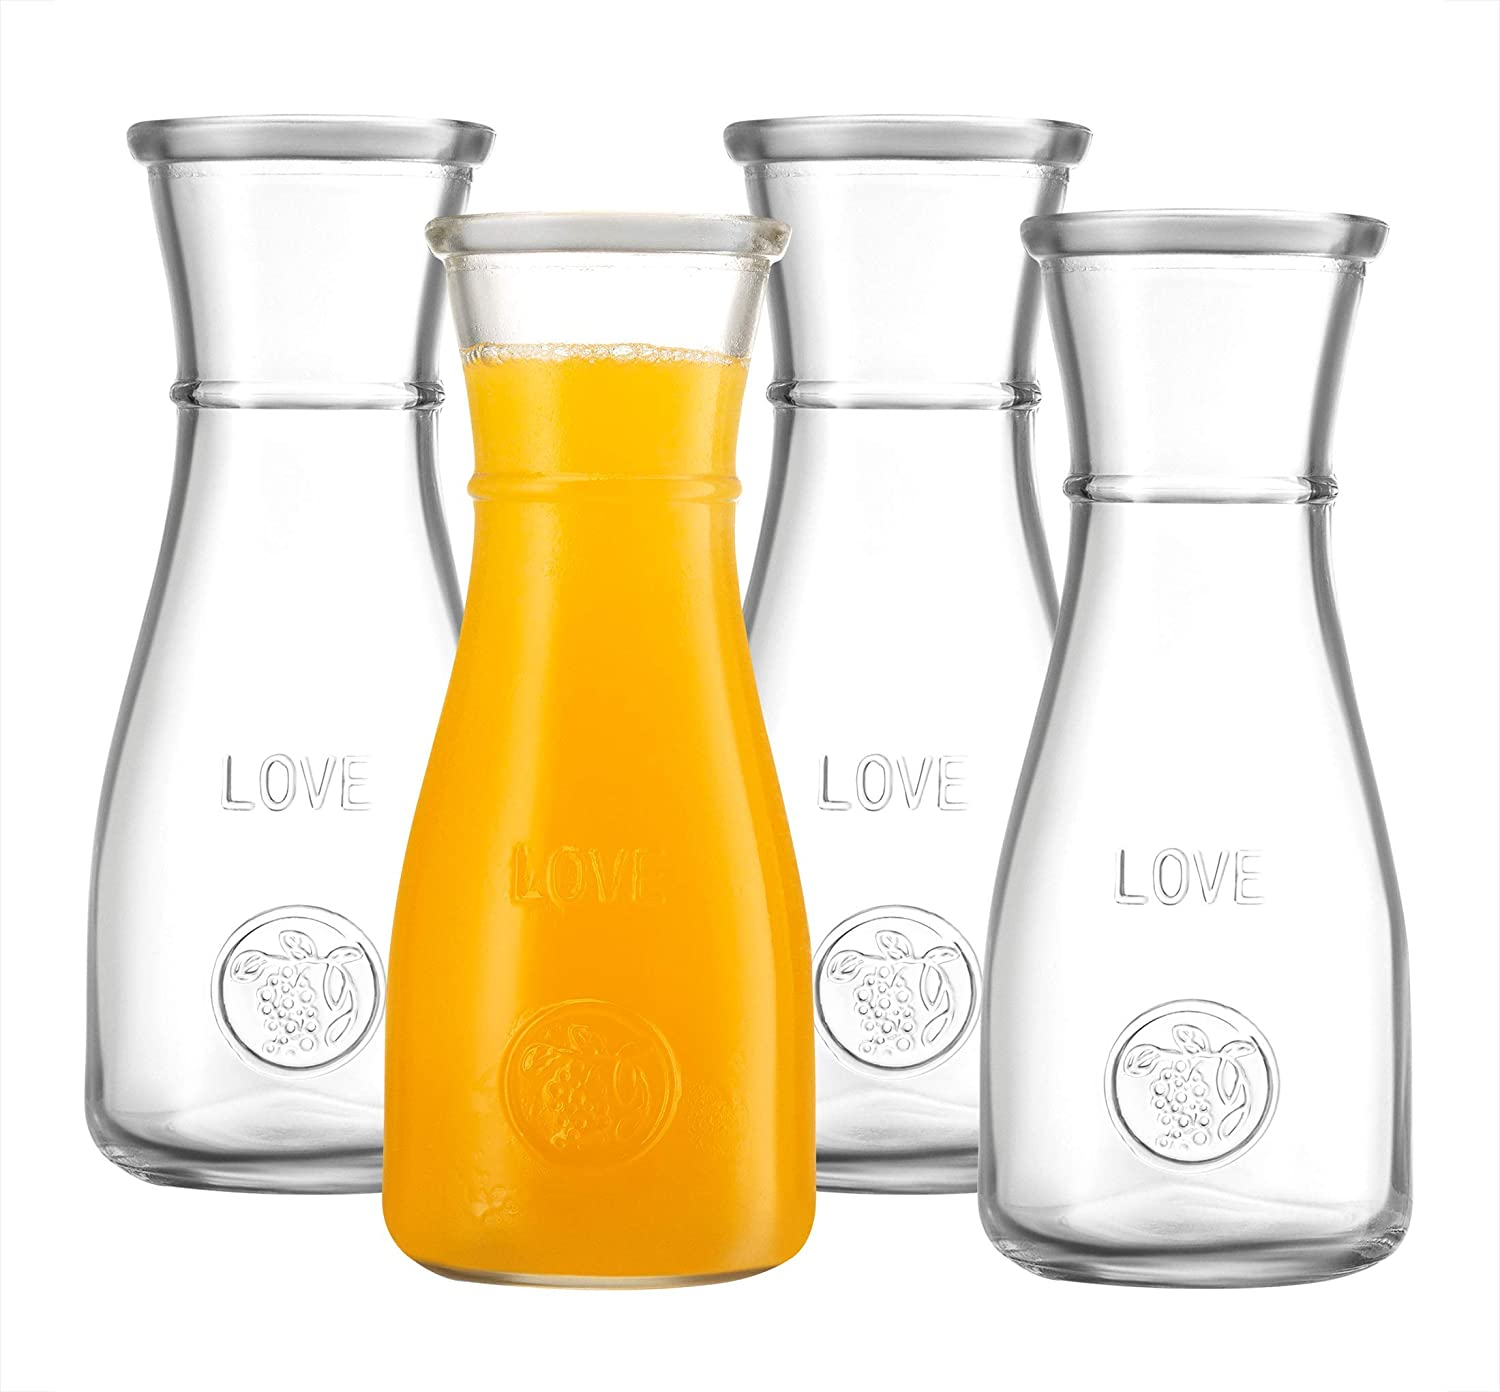 Small Personal Glass Carafe, 350ml – 4 Pack – Single Serve Elegant Wine Decanter and LOVE Drink Pitcher - Narrow Neck Comfortable Grip, Easy Pouring Wide Mouth - for Parties and Events – Kitchen Lux.